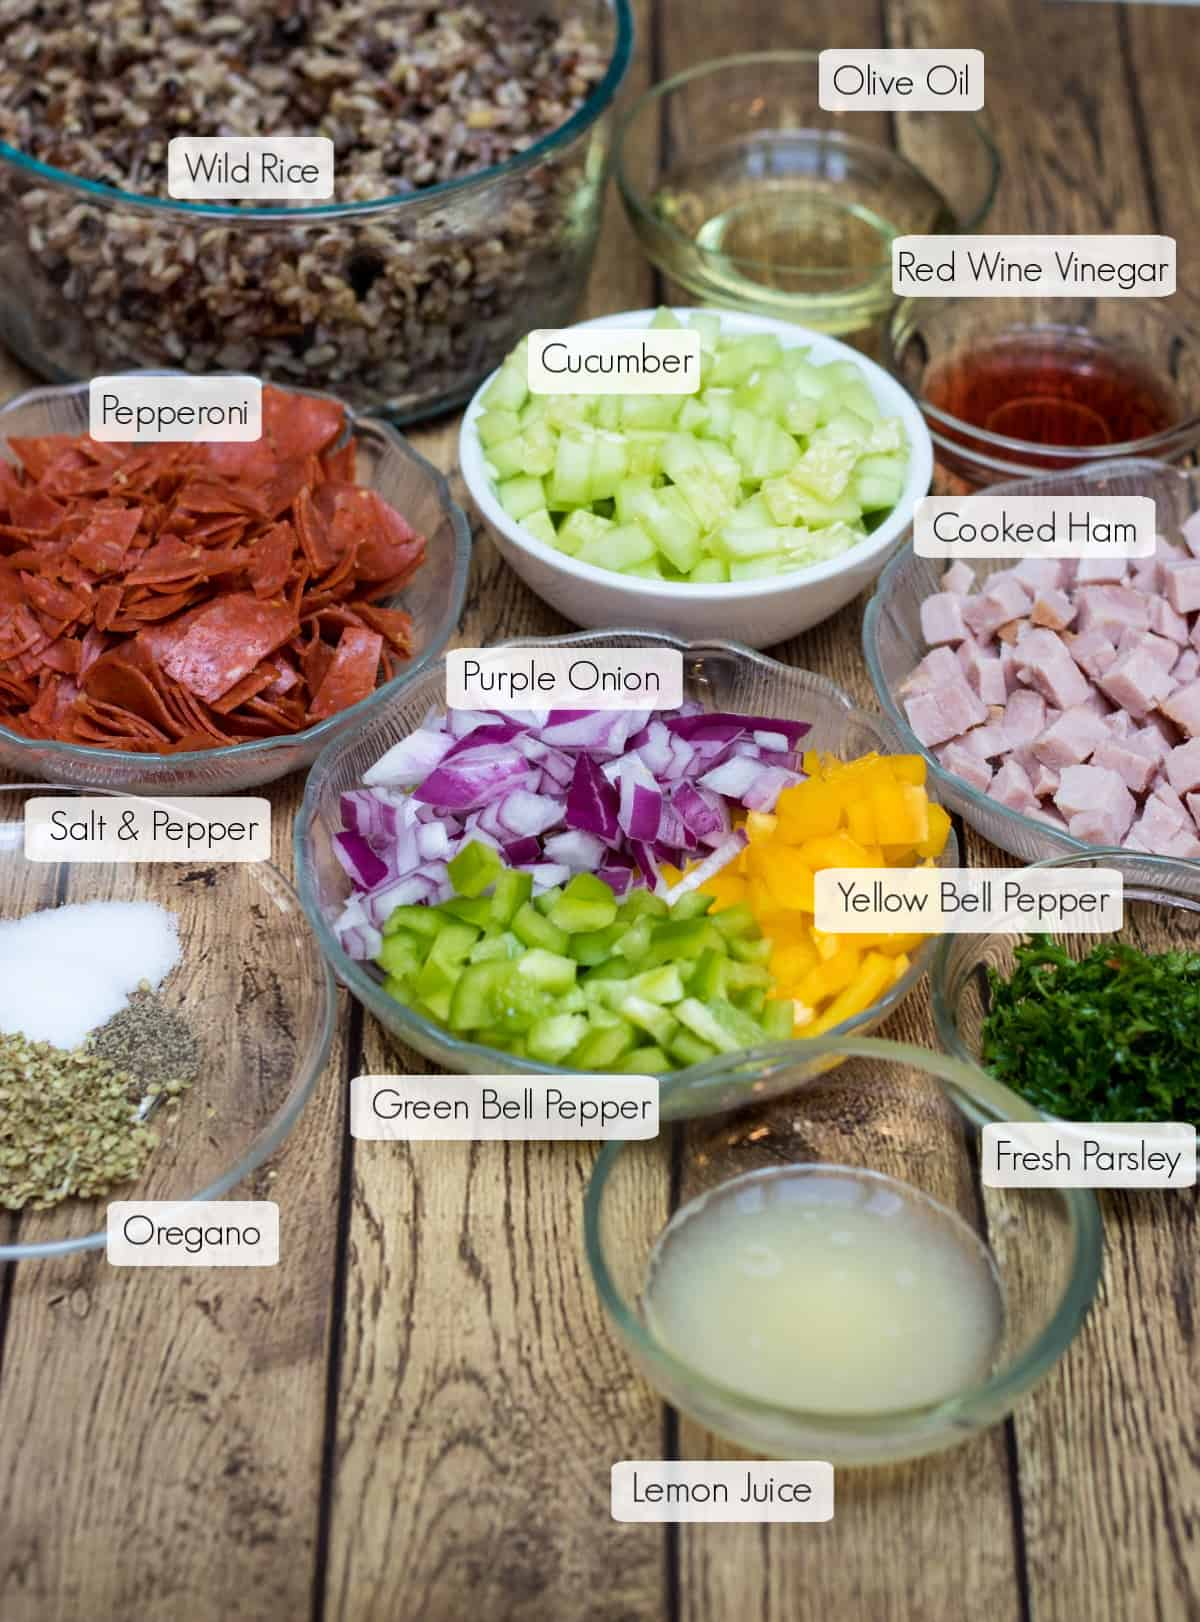 Labeled ingredients in bowls for Italian Vegetable Wild Rice Salad